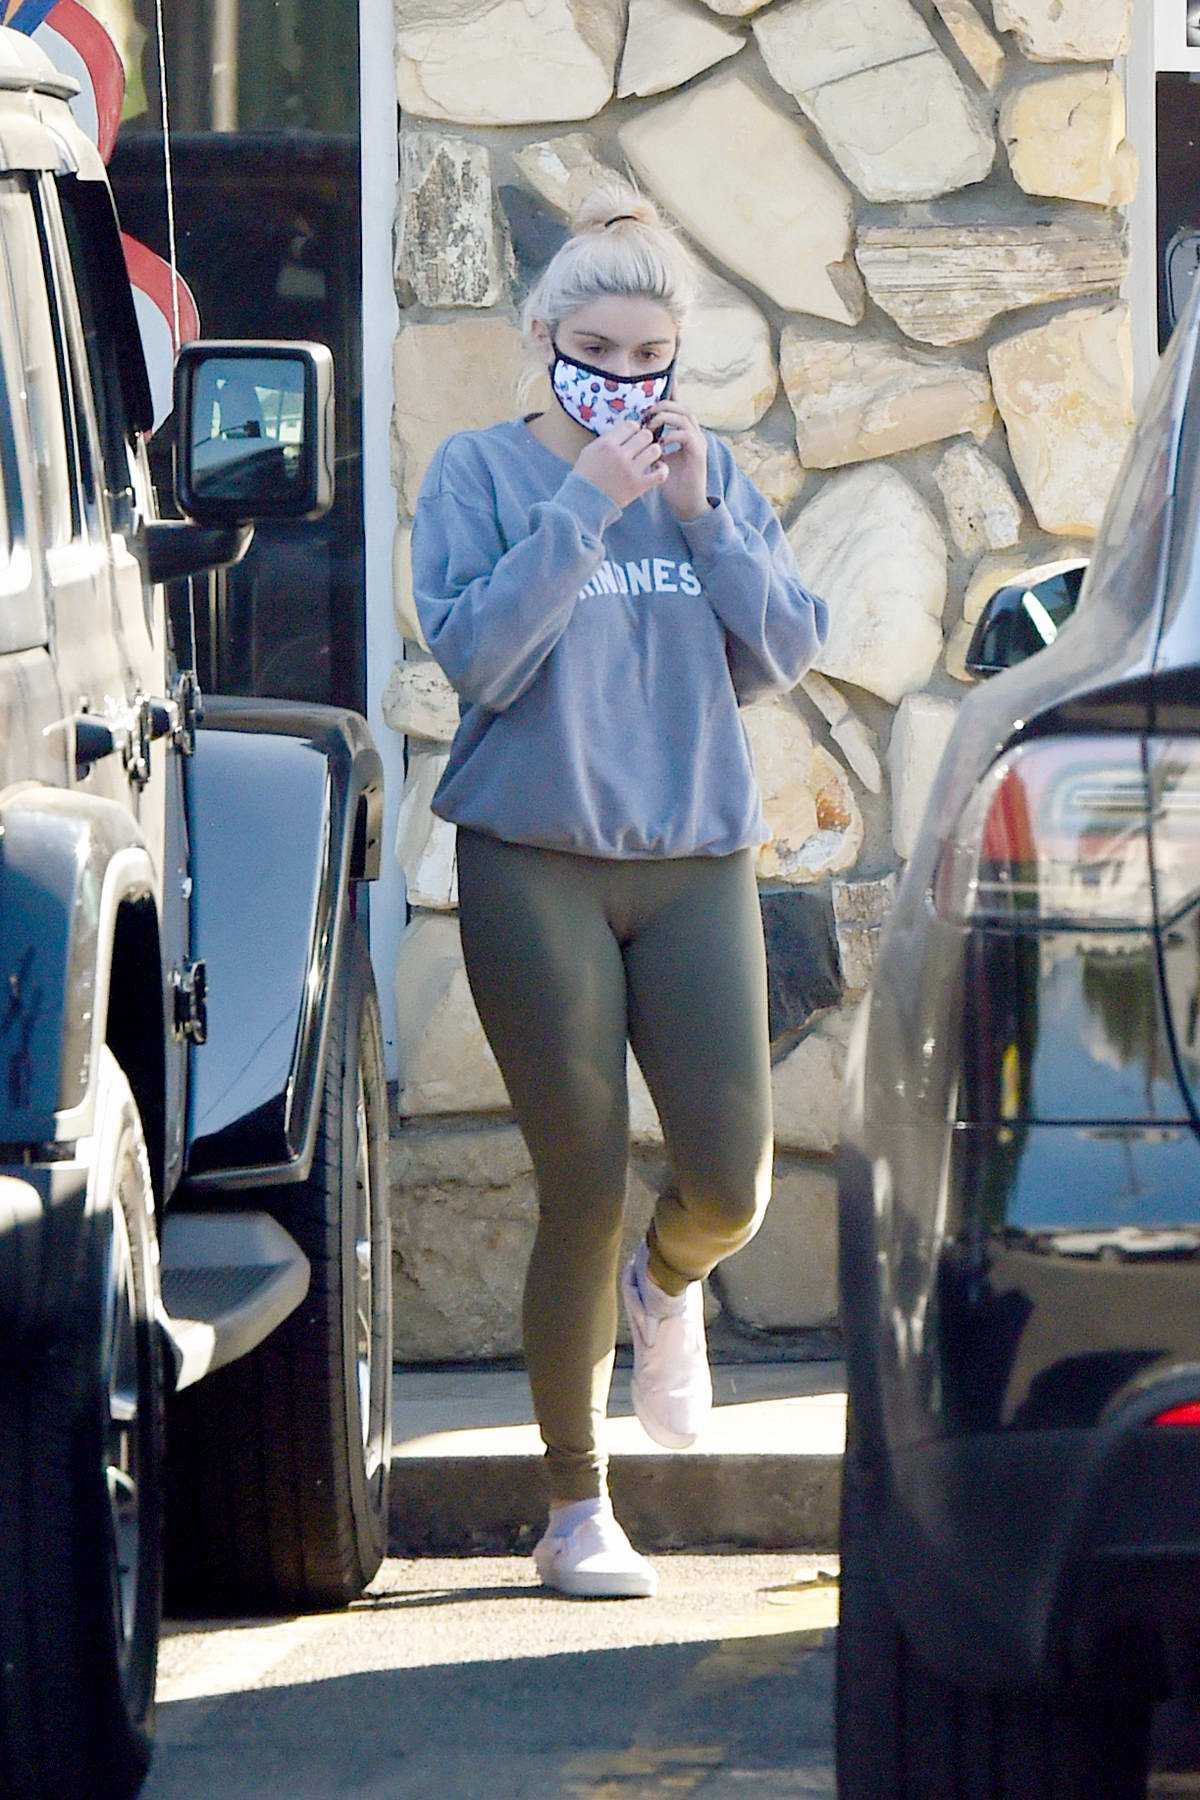 Ariel Winter spotted as she takes her dog to a veterinarian in Los Angeles